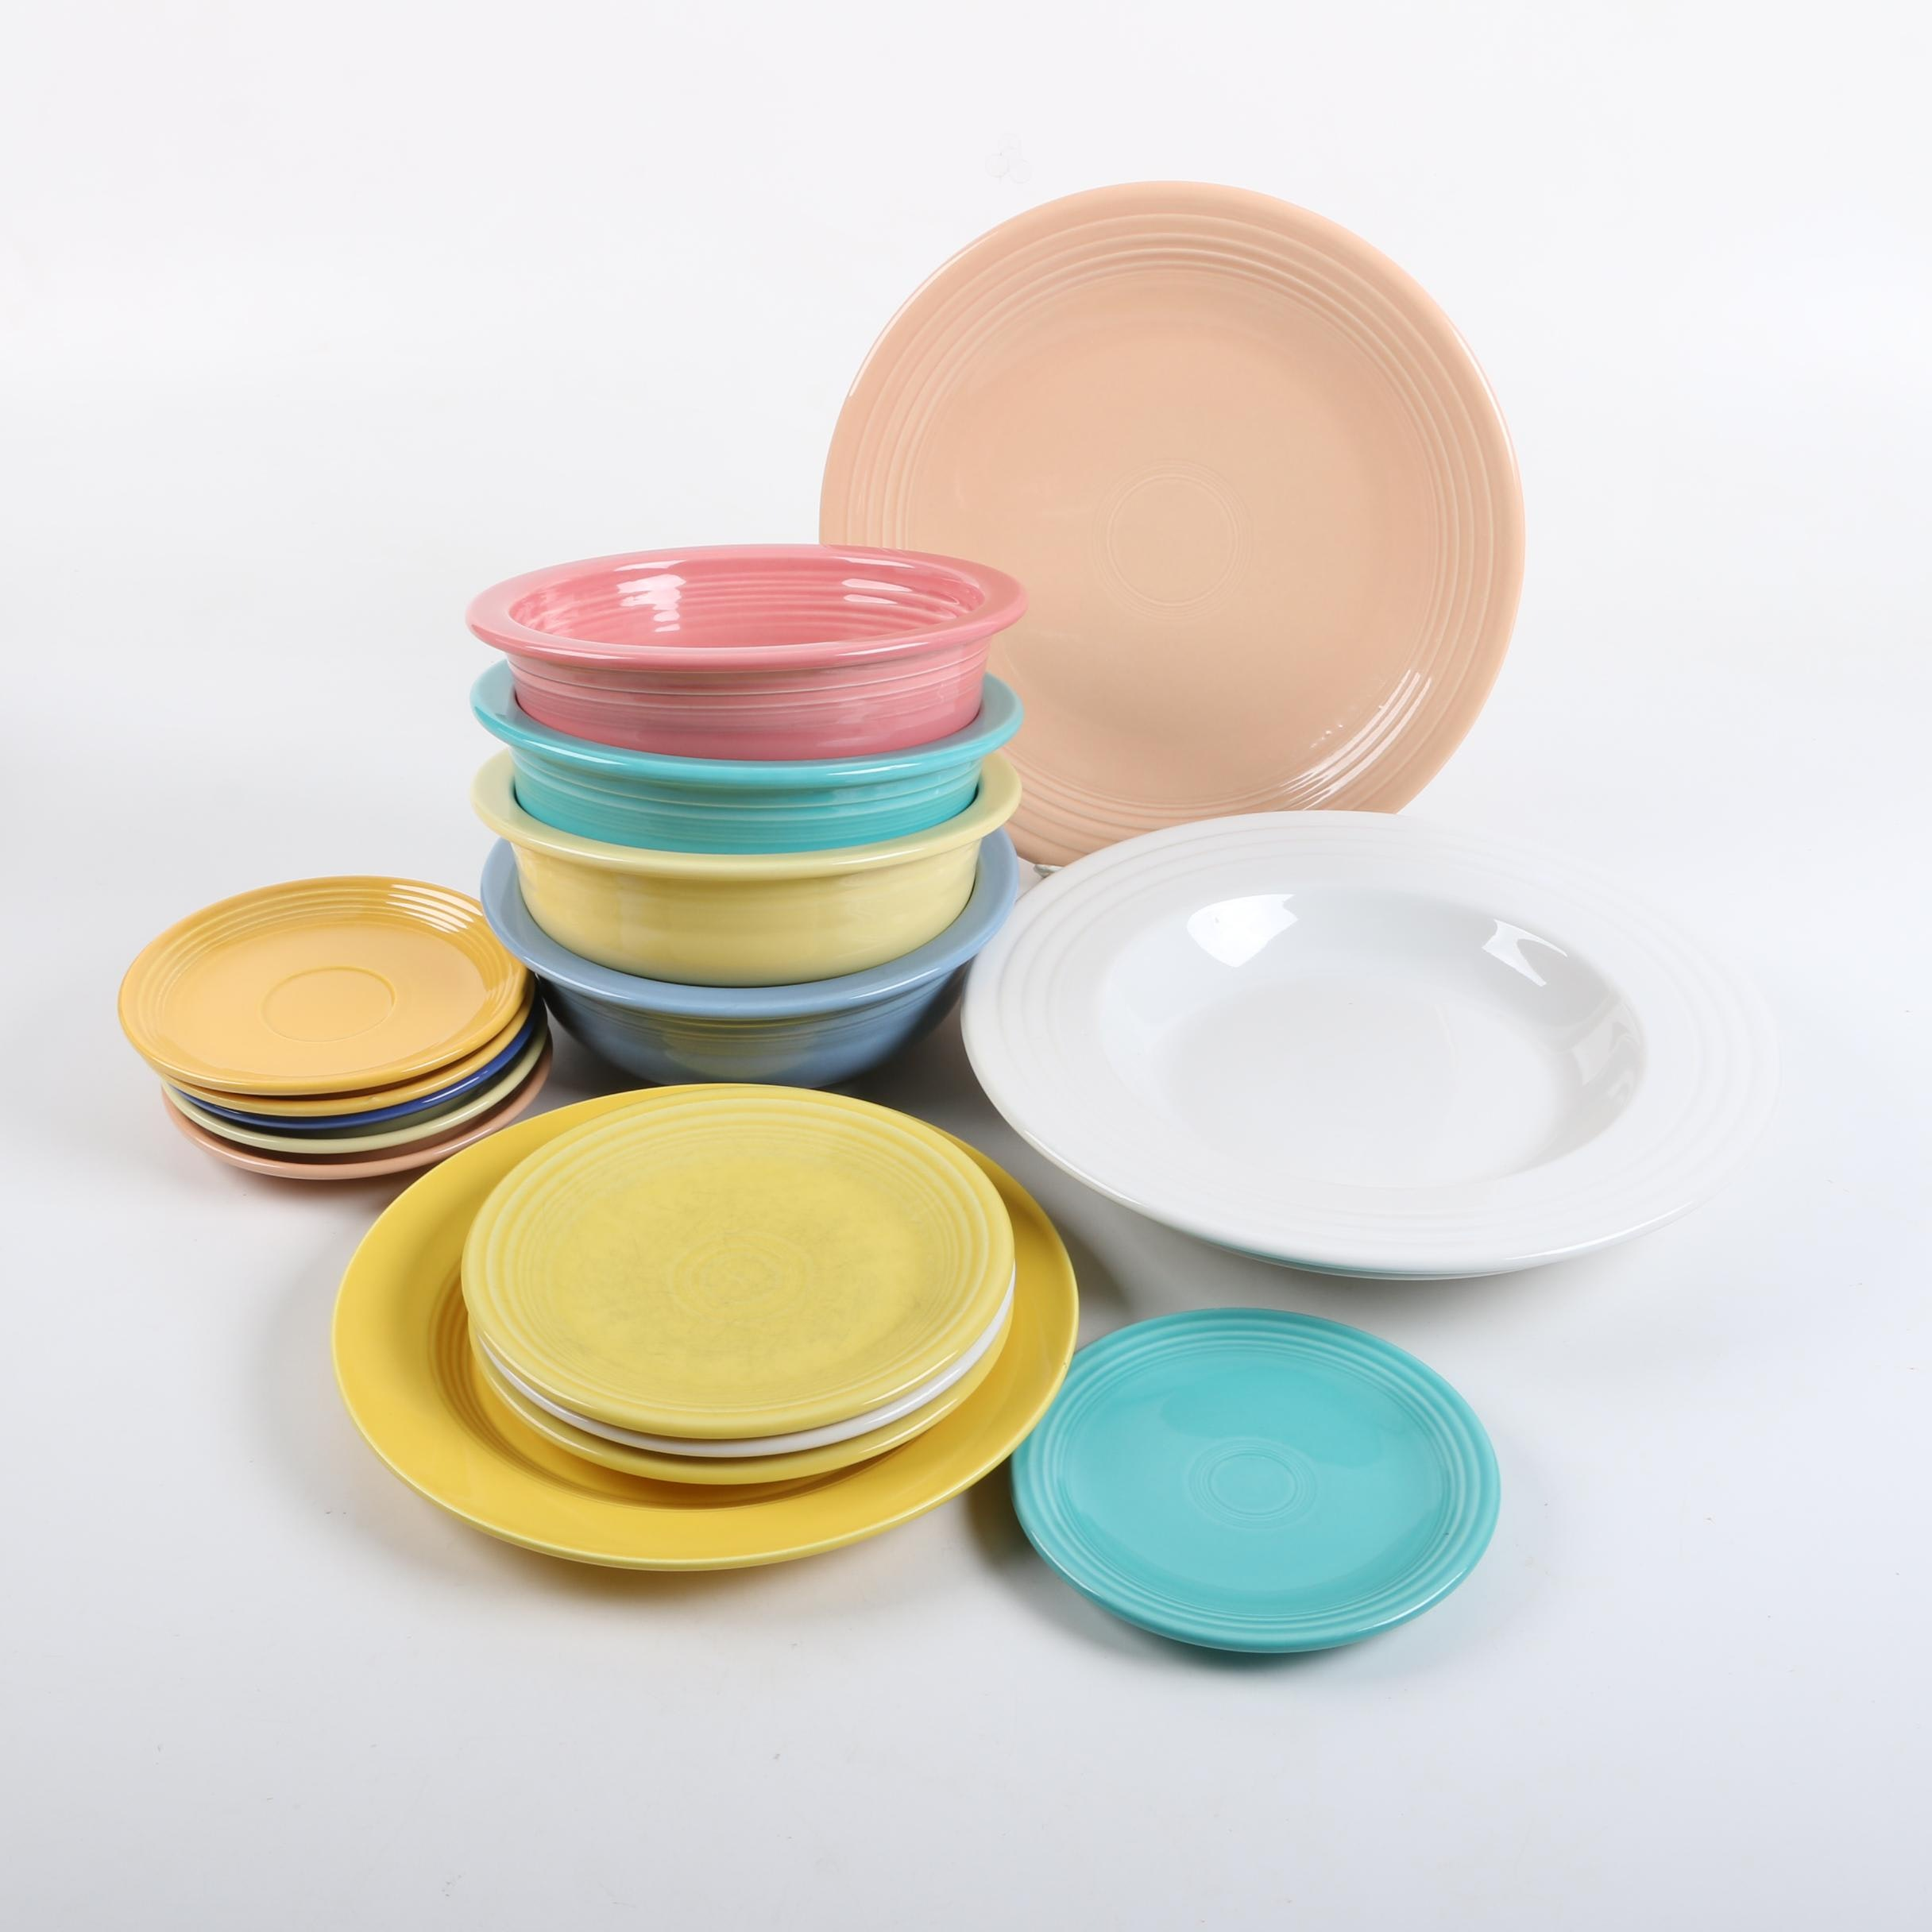 Collection of Fiesta Ceramic Tableware